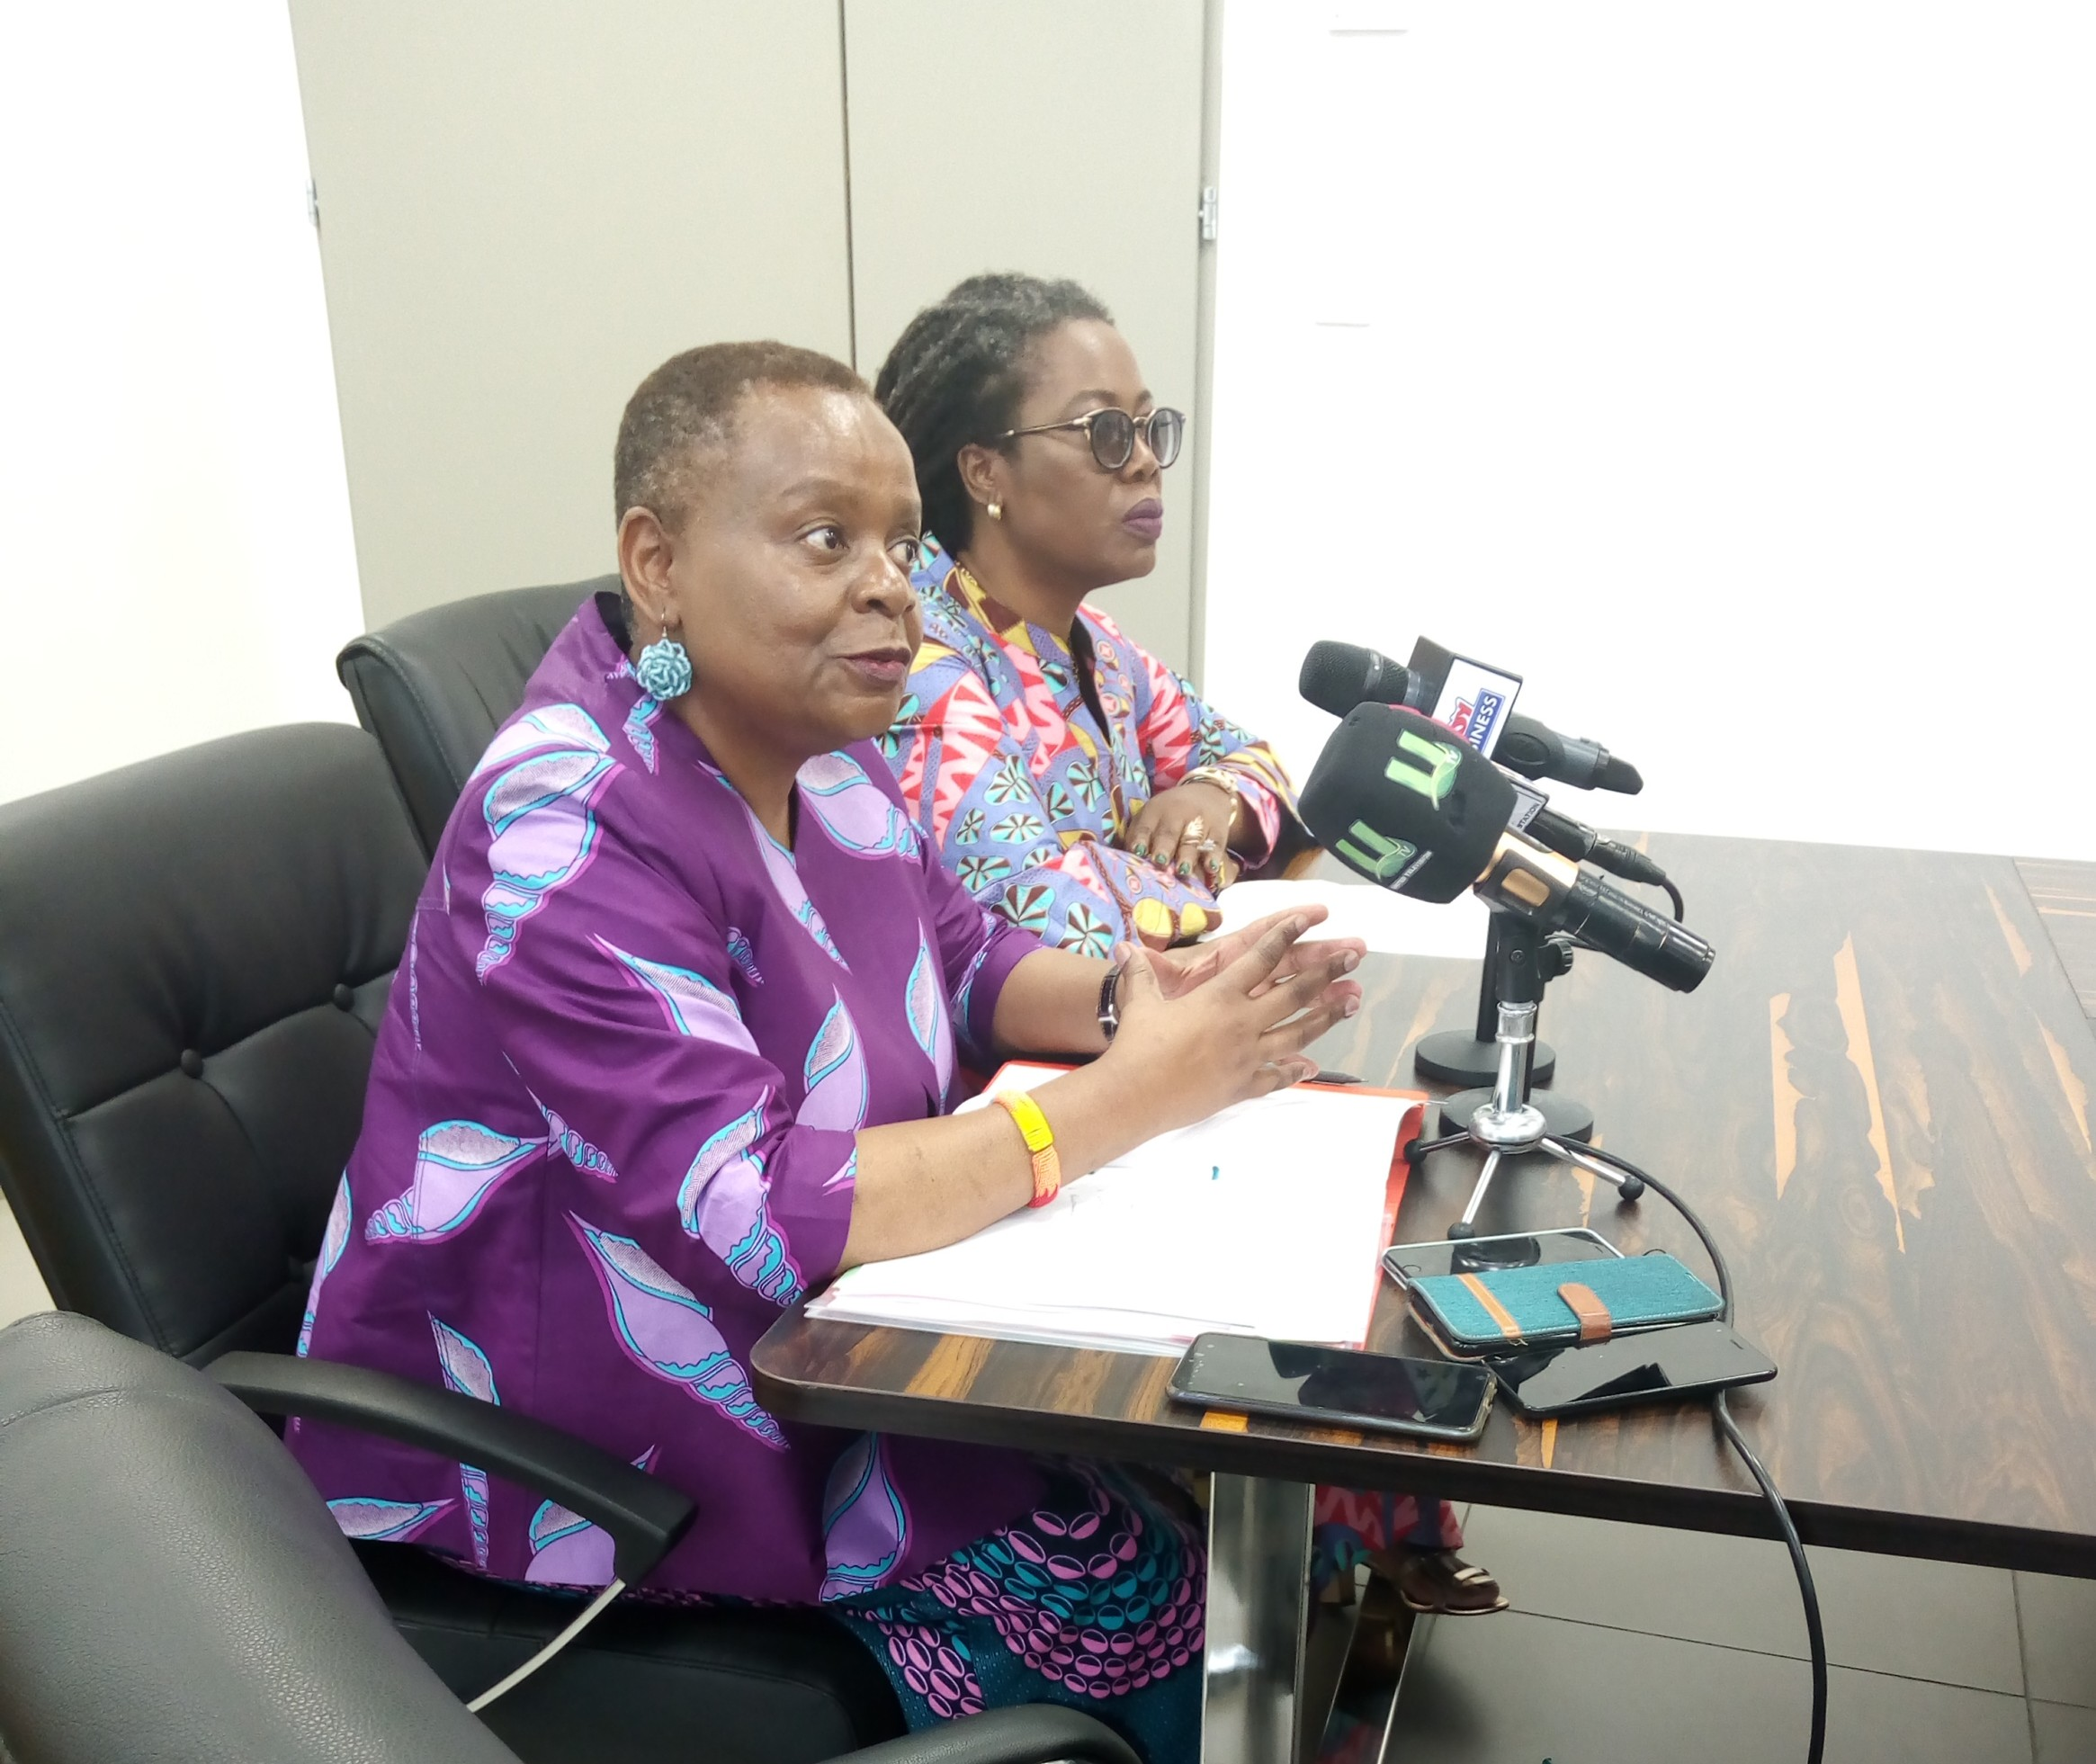 Ms Dorothy Ng'ambi Tembo, Acting Executive Director of the International Trade Centre (left) speaking during her visit to Ghana. Seated by her is Dr Afua Asabea Asare, CEO of GEPA